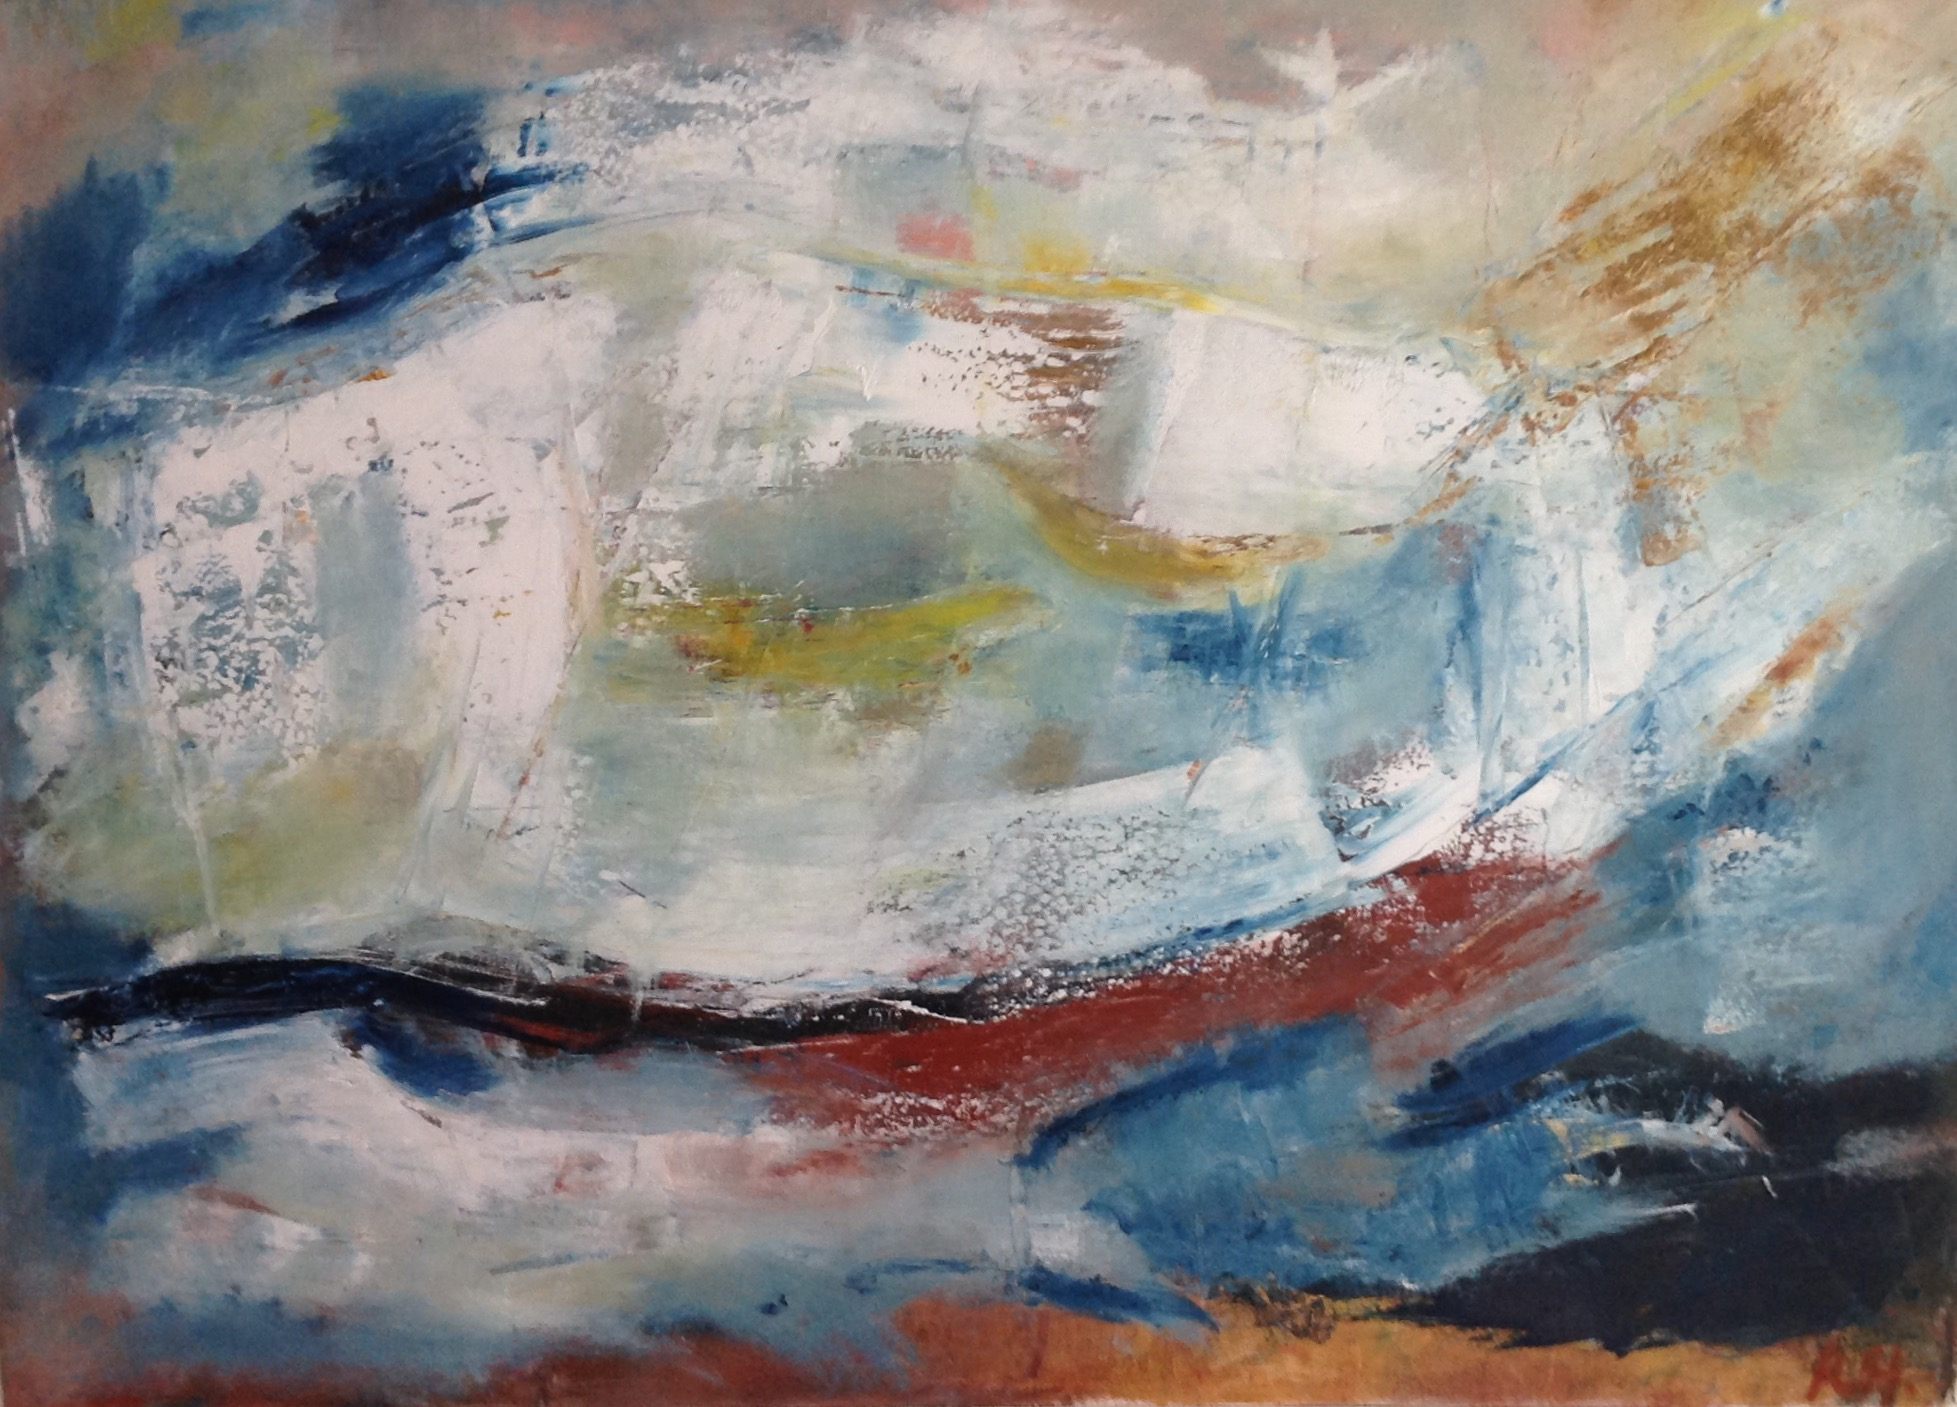 Untitled, oil on canvas, 30 x 40 inches, 76 x 100 cm